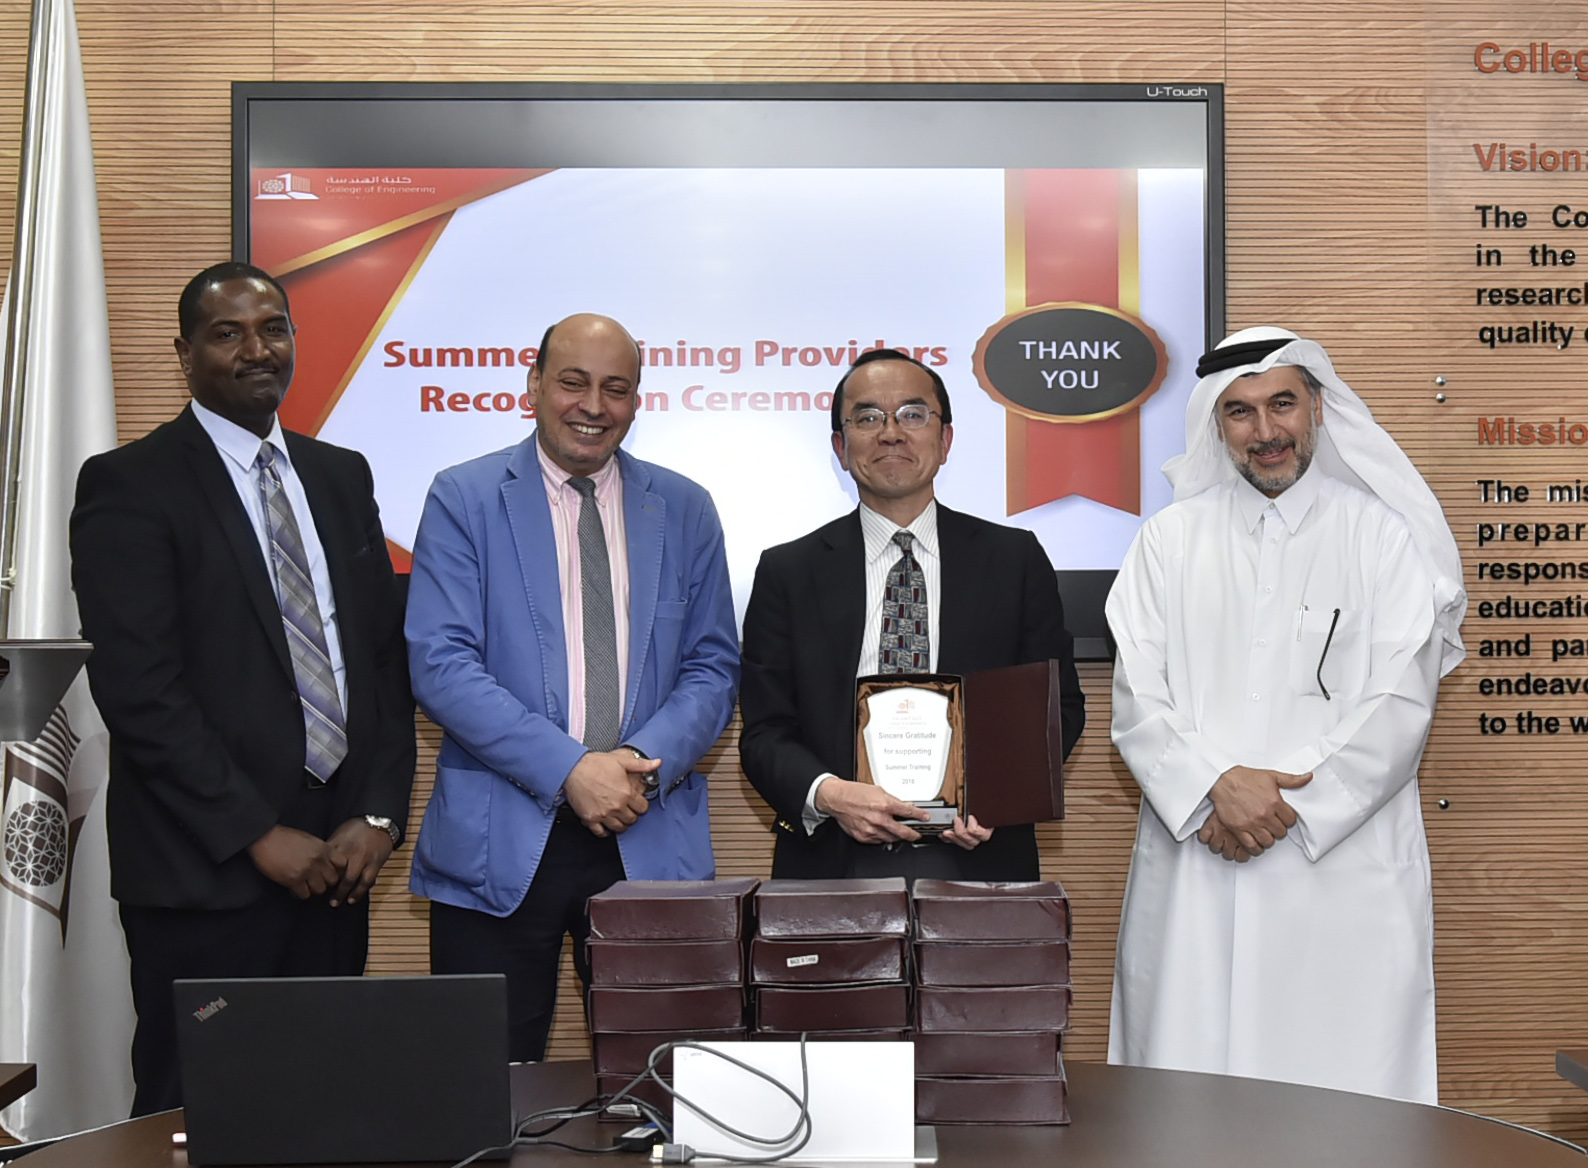 Chiyoda Almana recognition during the Thank You event organized by Qatar University, College of Engineering